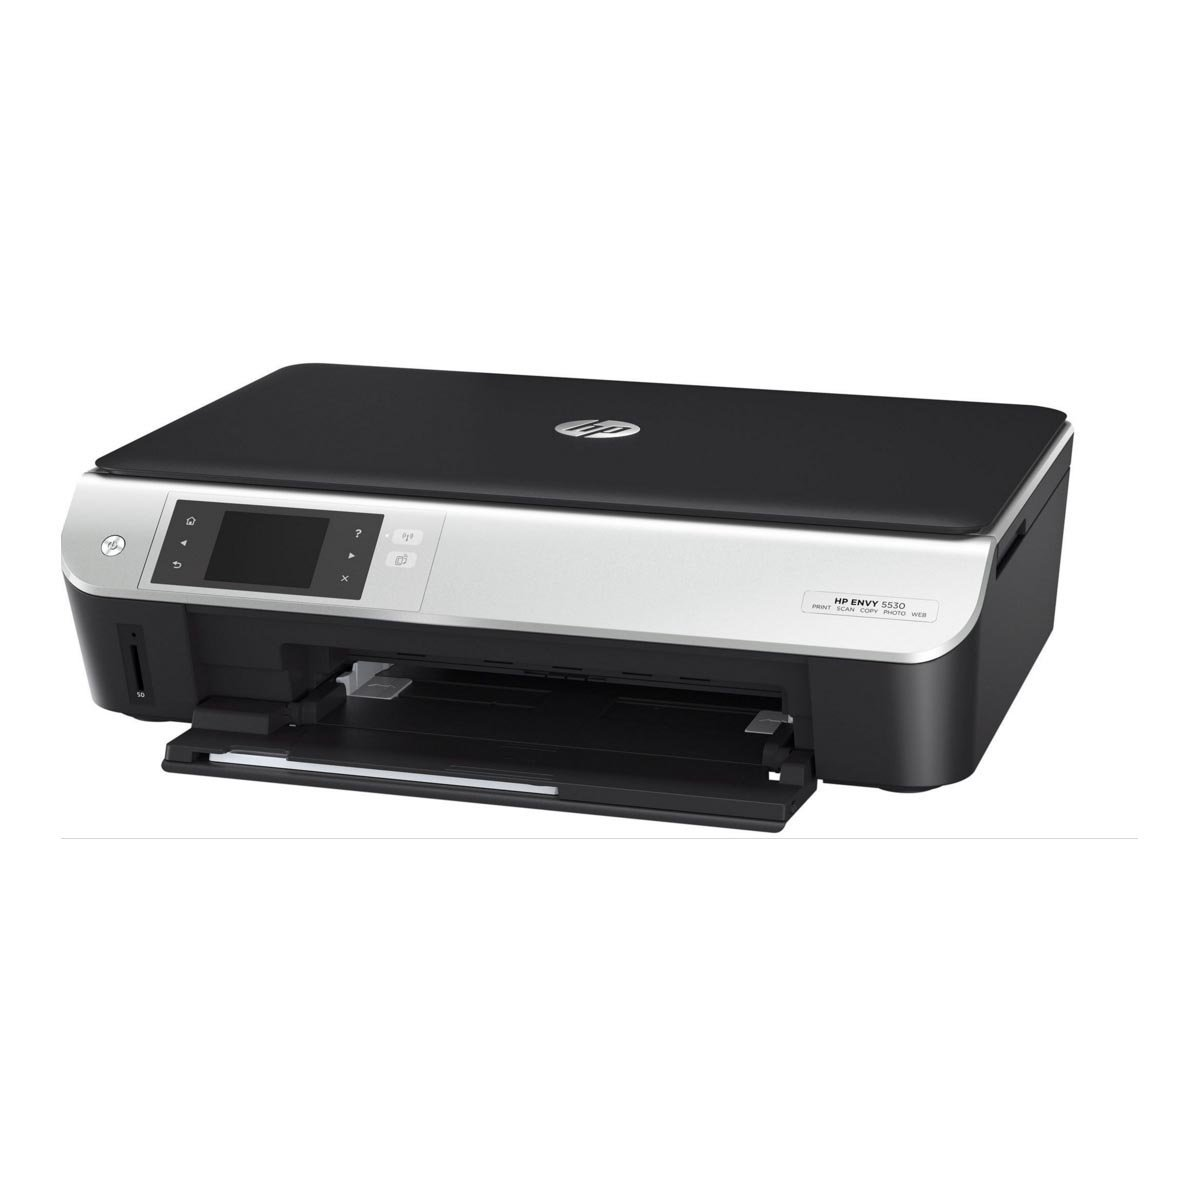 Amazon.com: HP ENVY 5535 e-All-in-One impresora, Negro ...